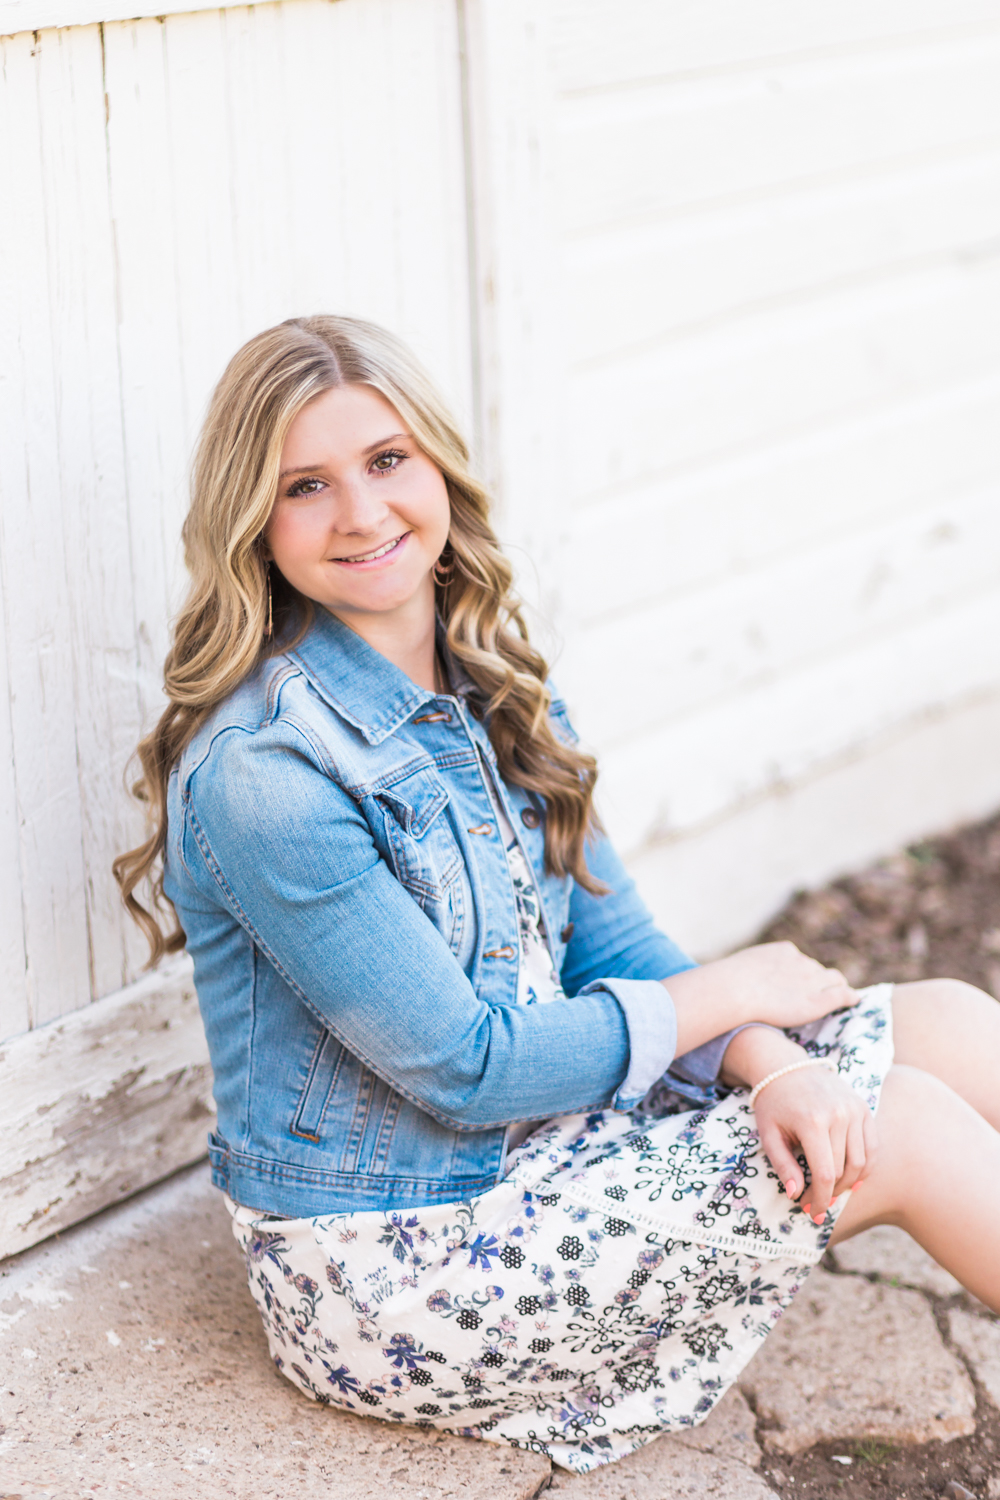 High-school-senior-pictures-whitney-bufton-photography-41.jpg